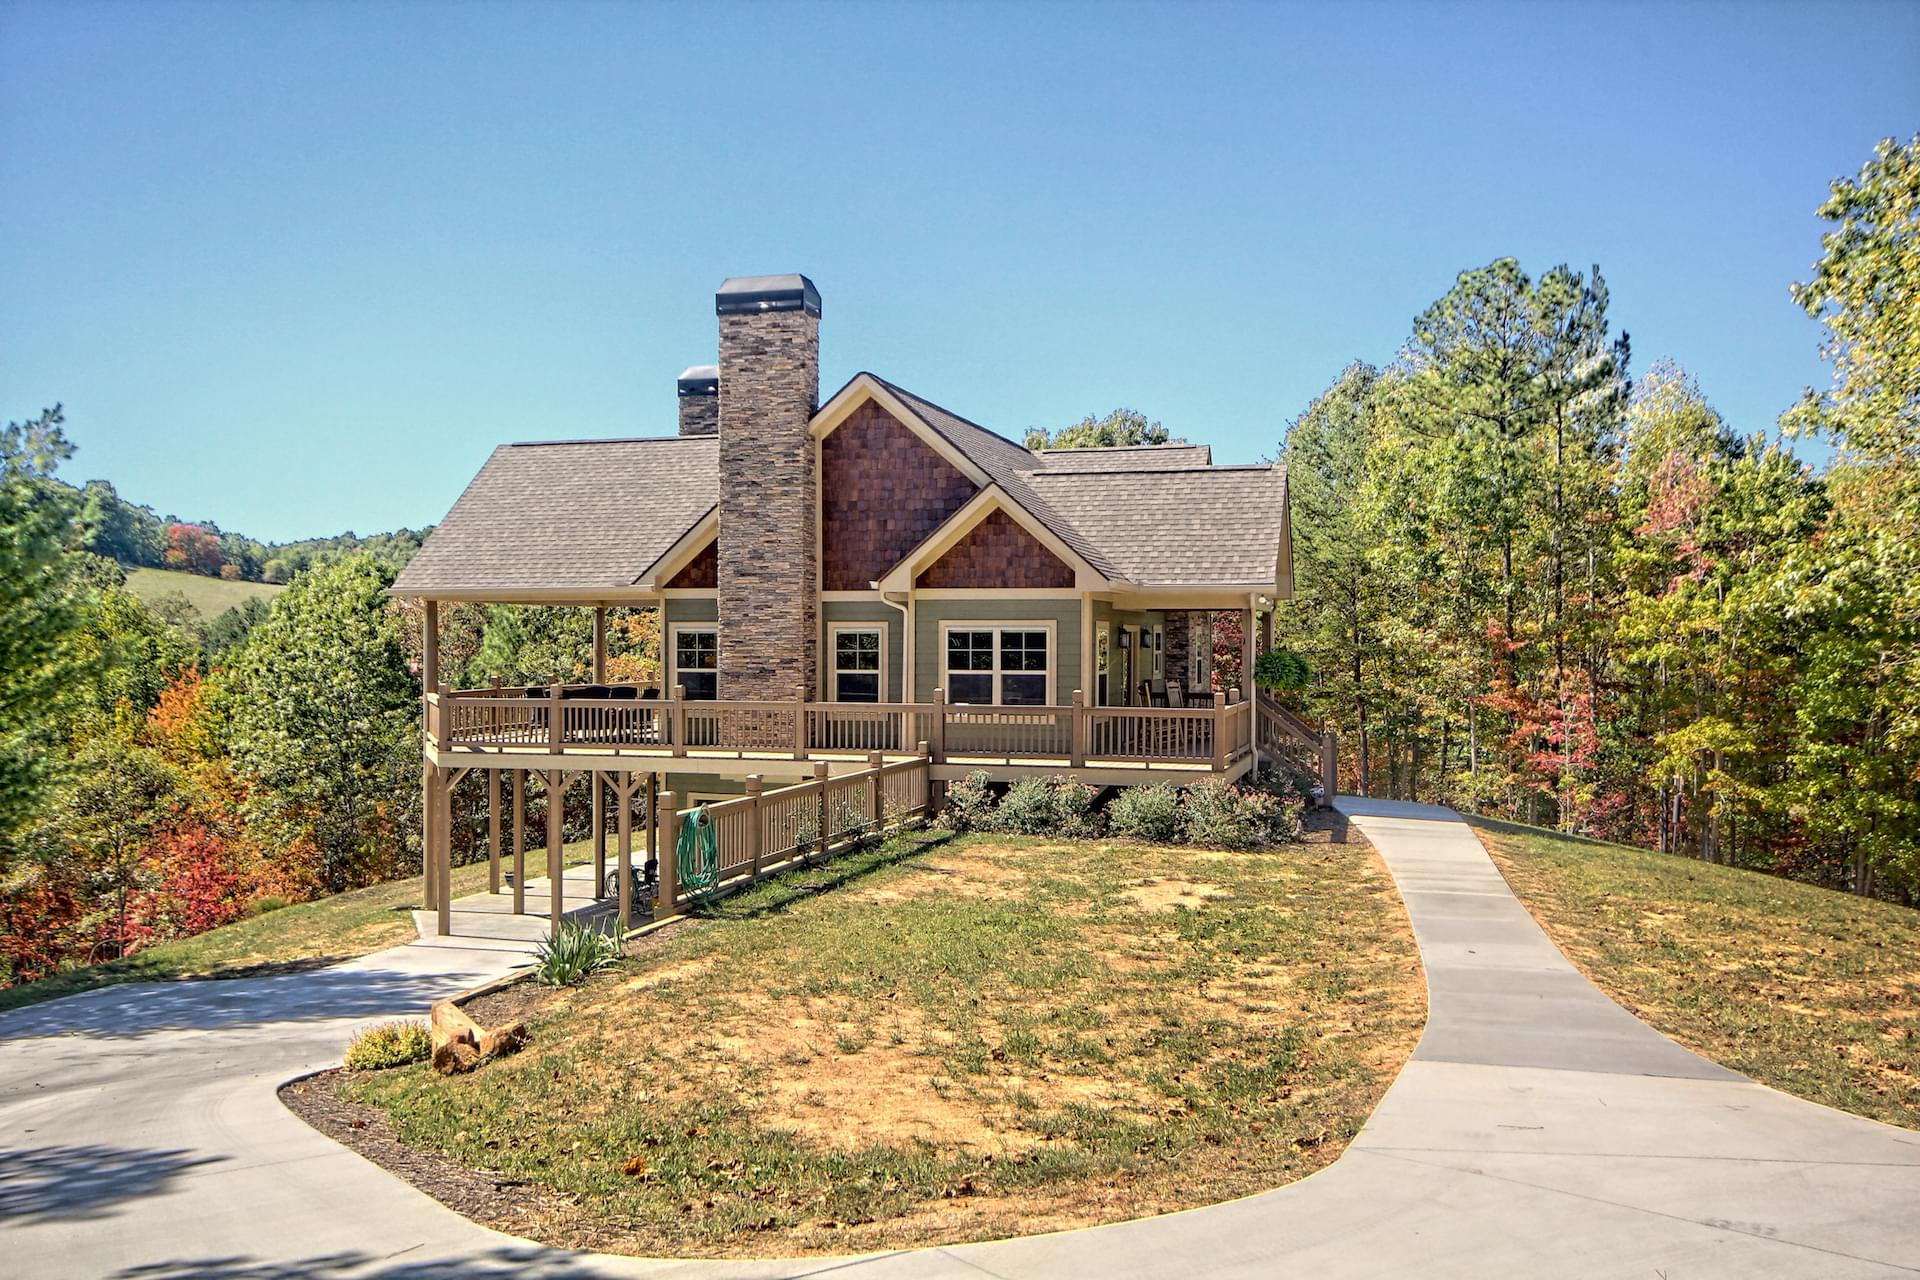 Build On Your Lot in North Carolina